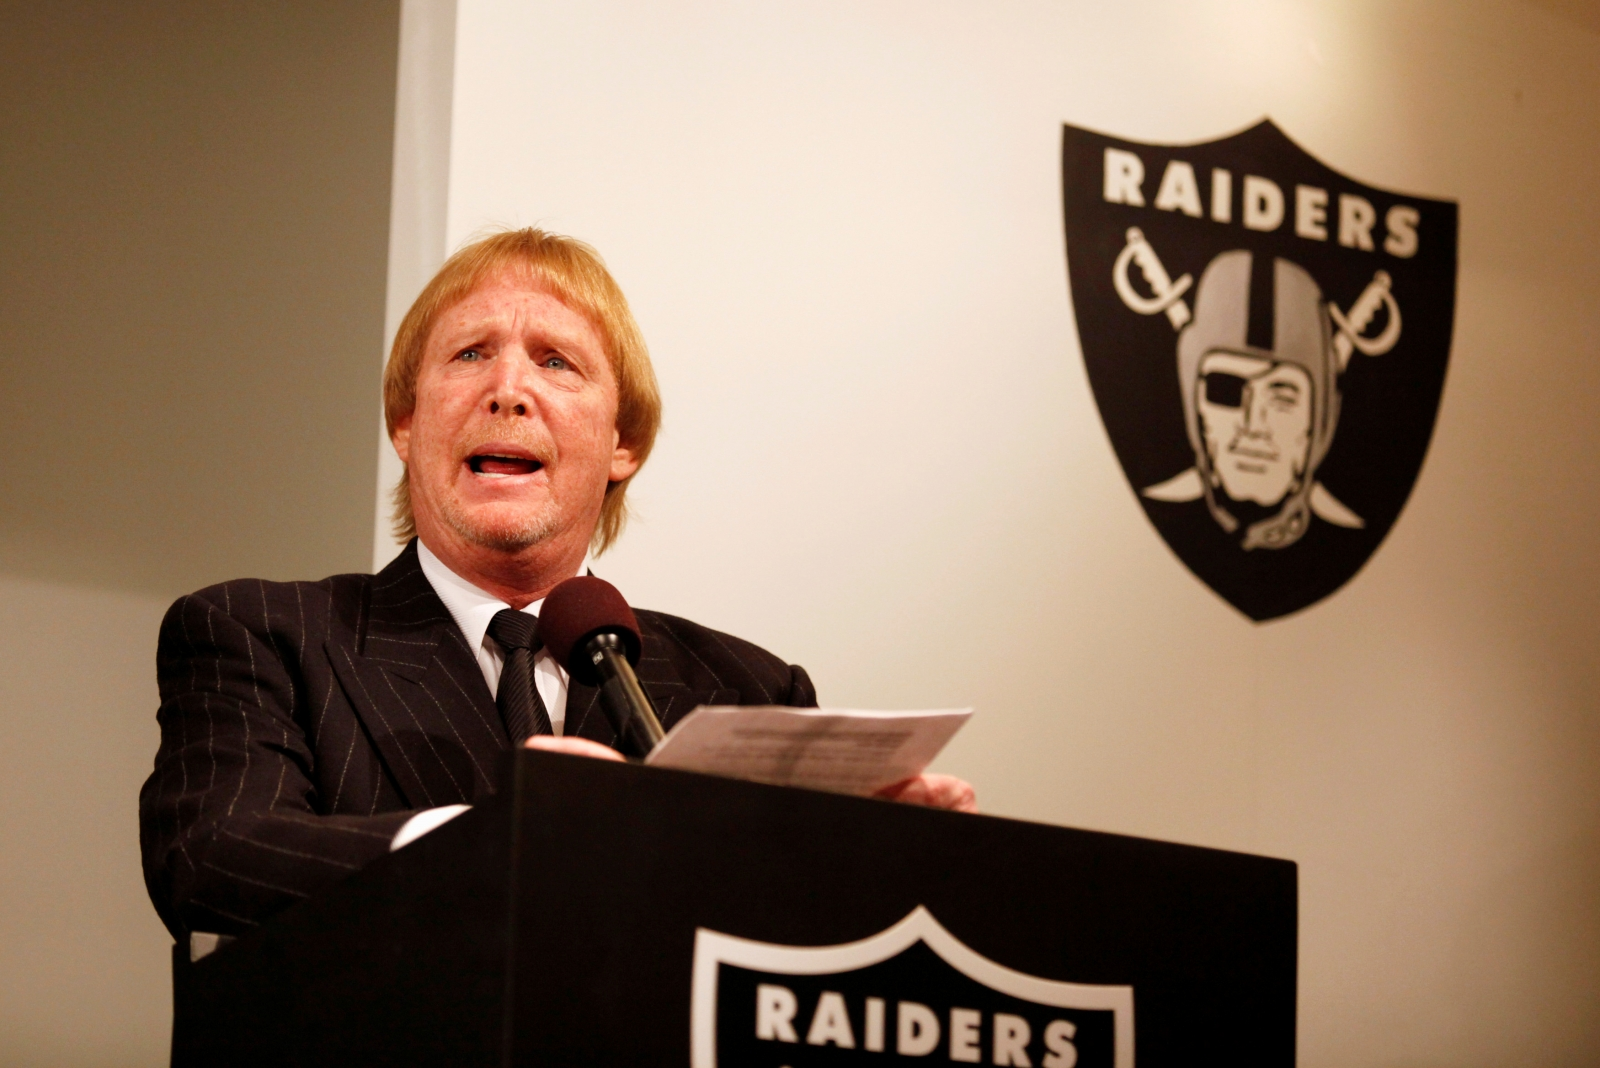 Oakland Coliseum apparently doesn't want Raiders to return in 2019